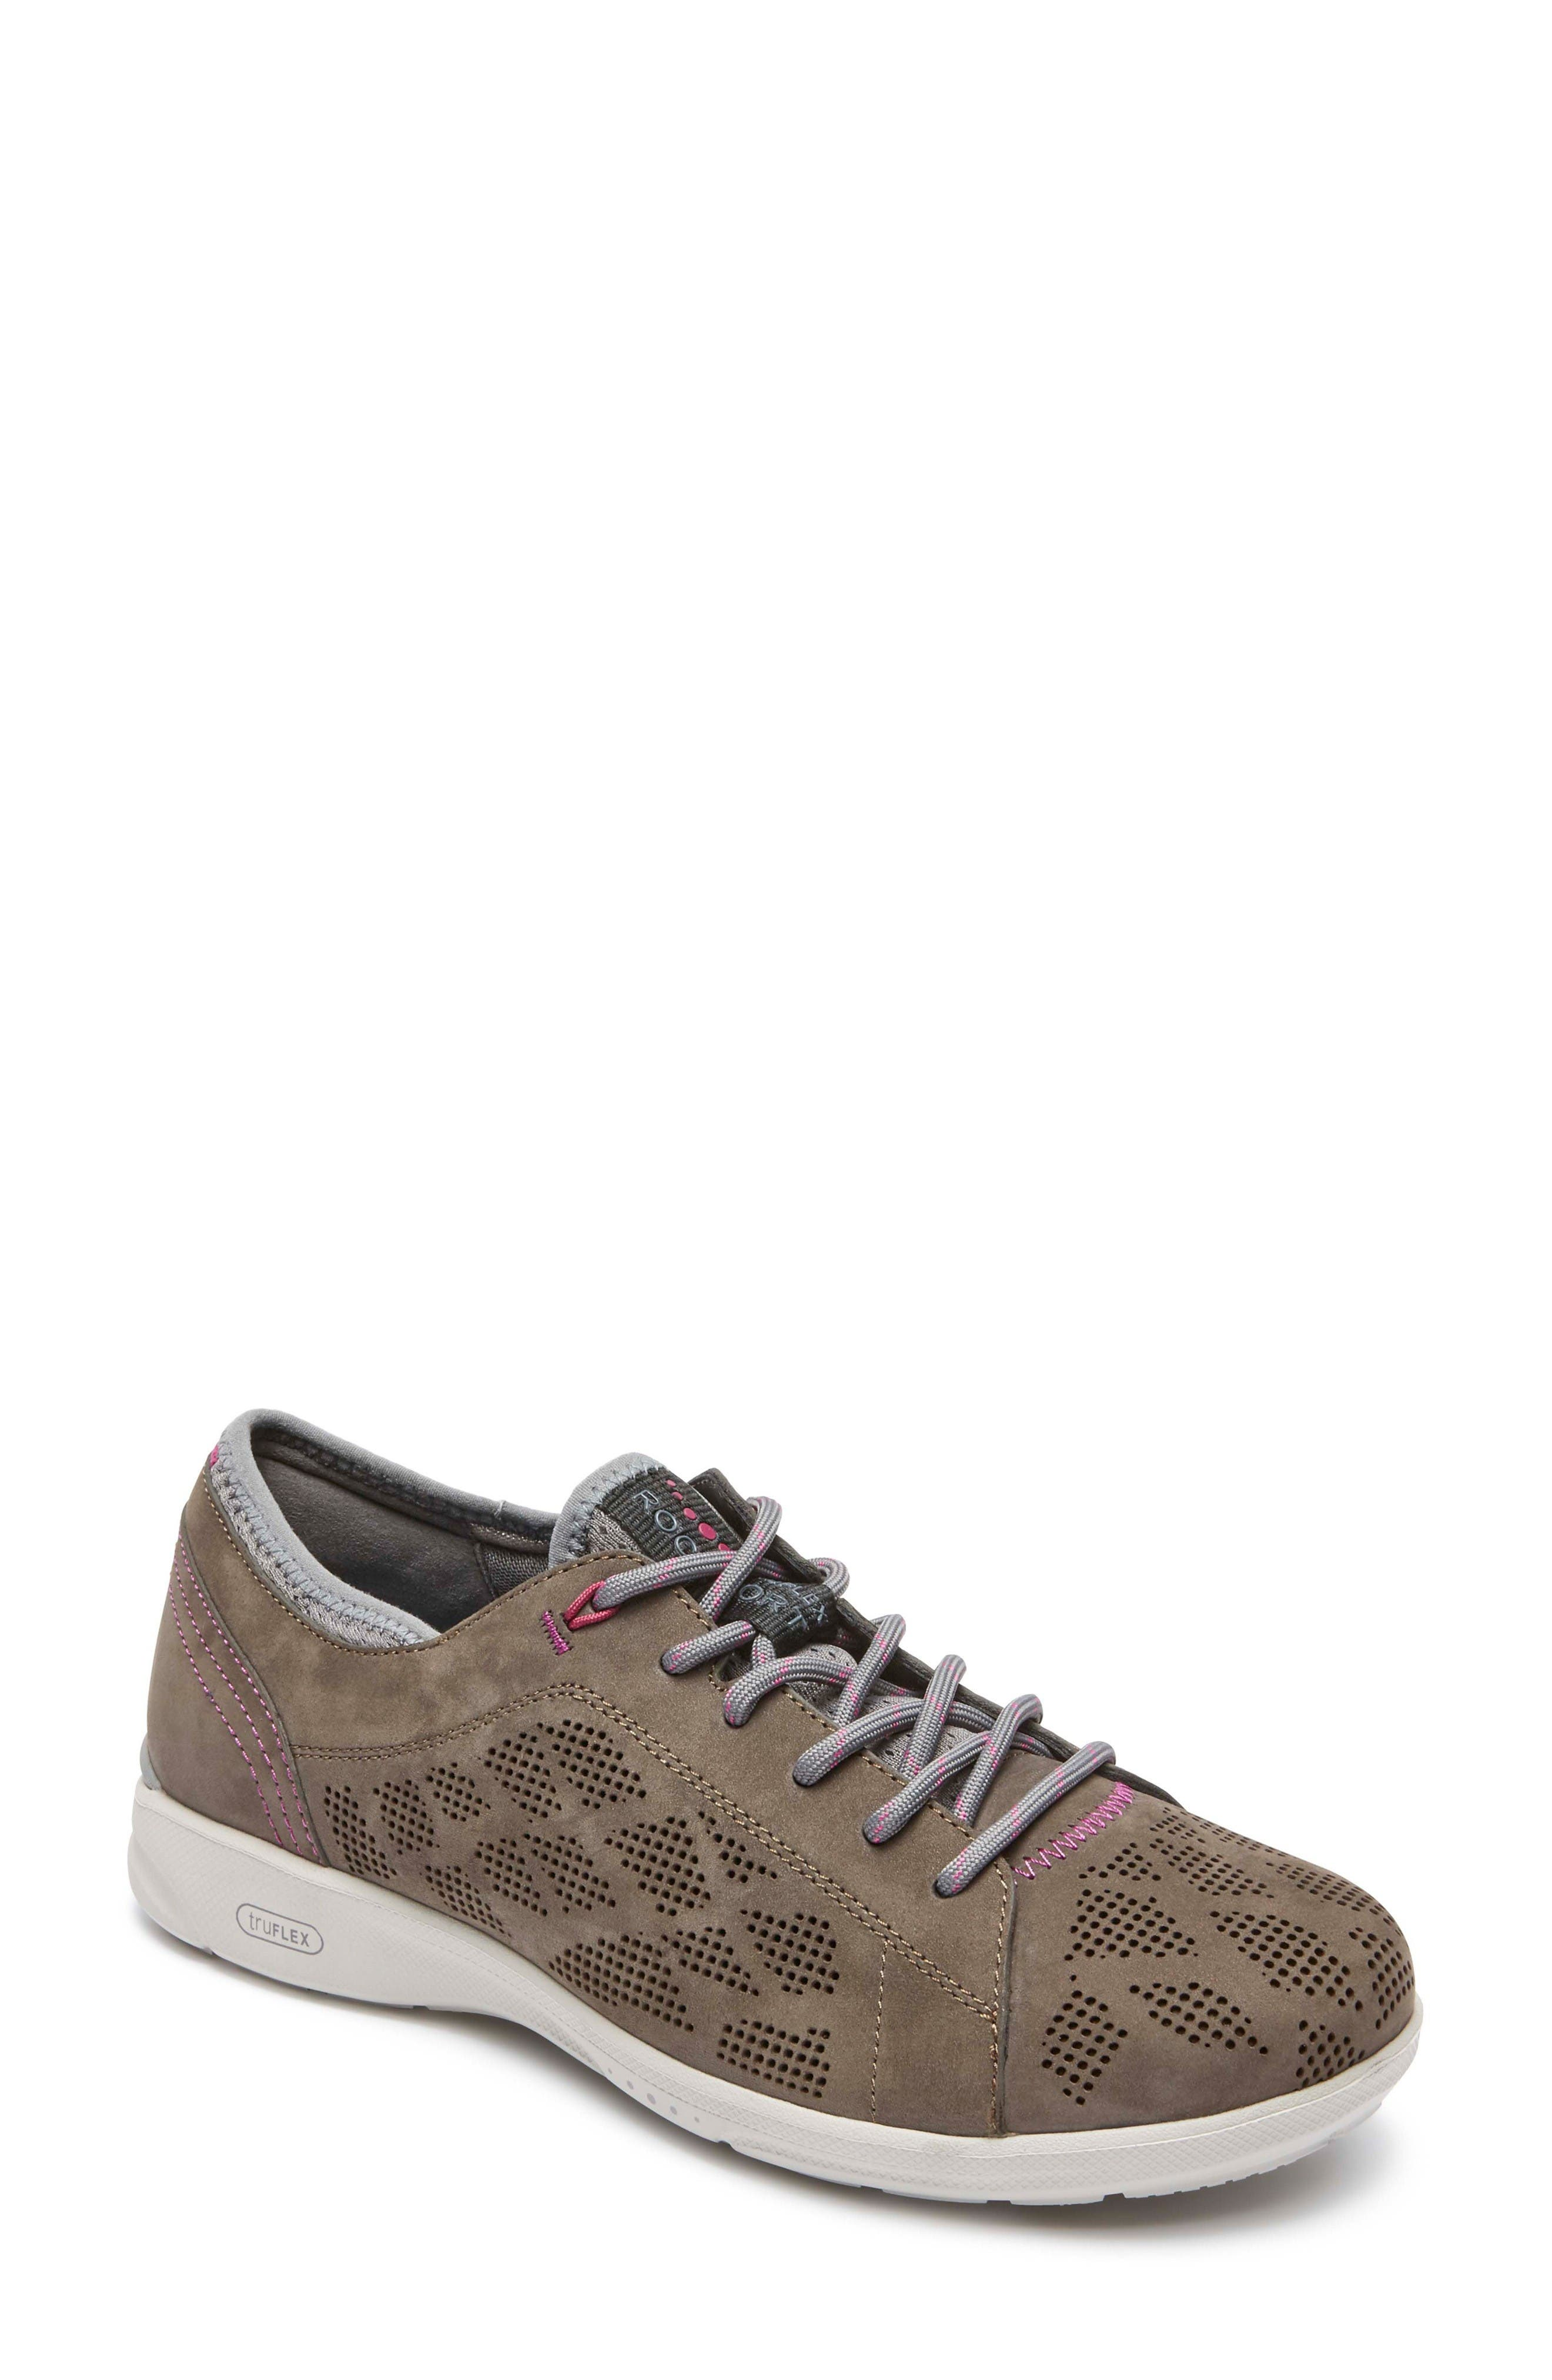 truFLEX Perforated Sneaker,                             Main thumbnail 1, color,                             Stone Leather